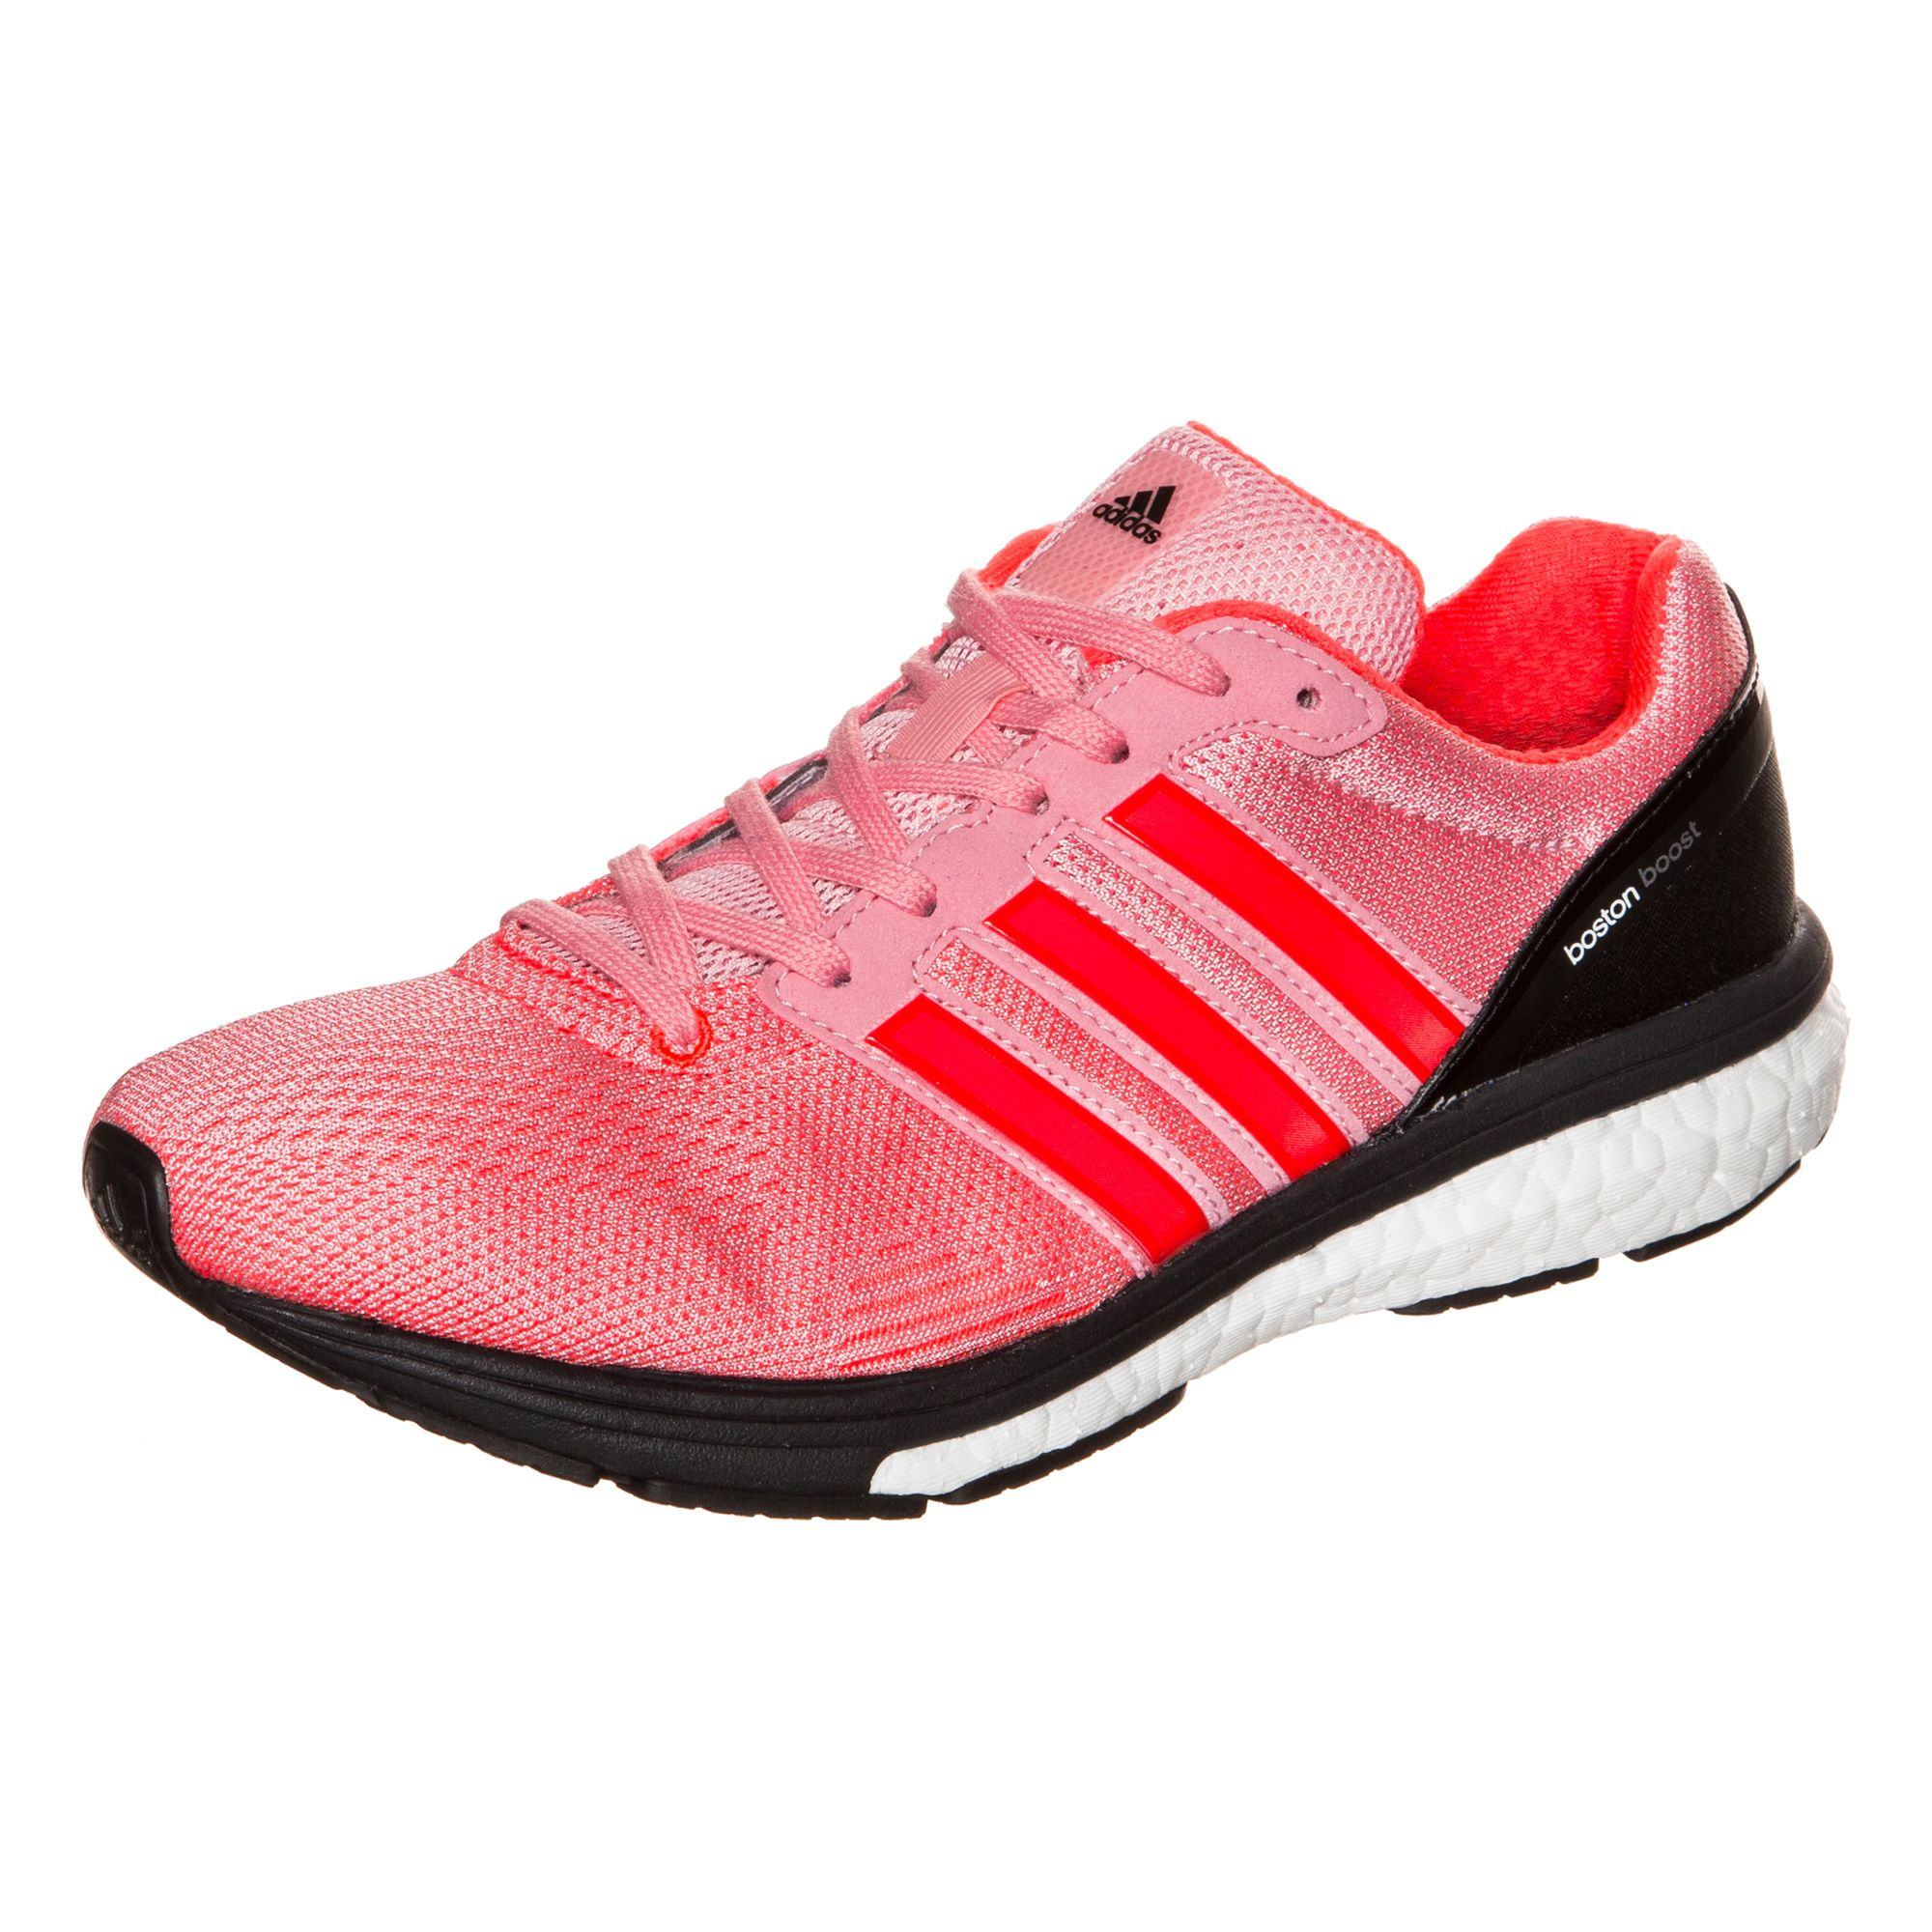 ADIDAS PERFORMANCE adidas Performance adizero Boston Boost 5 Laufschuh Damen